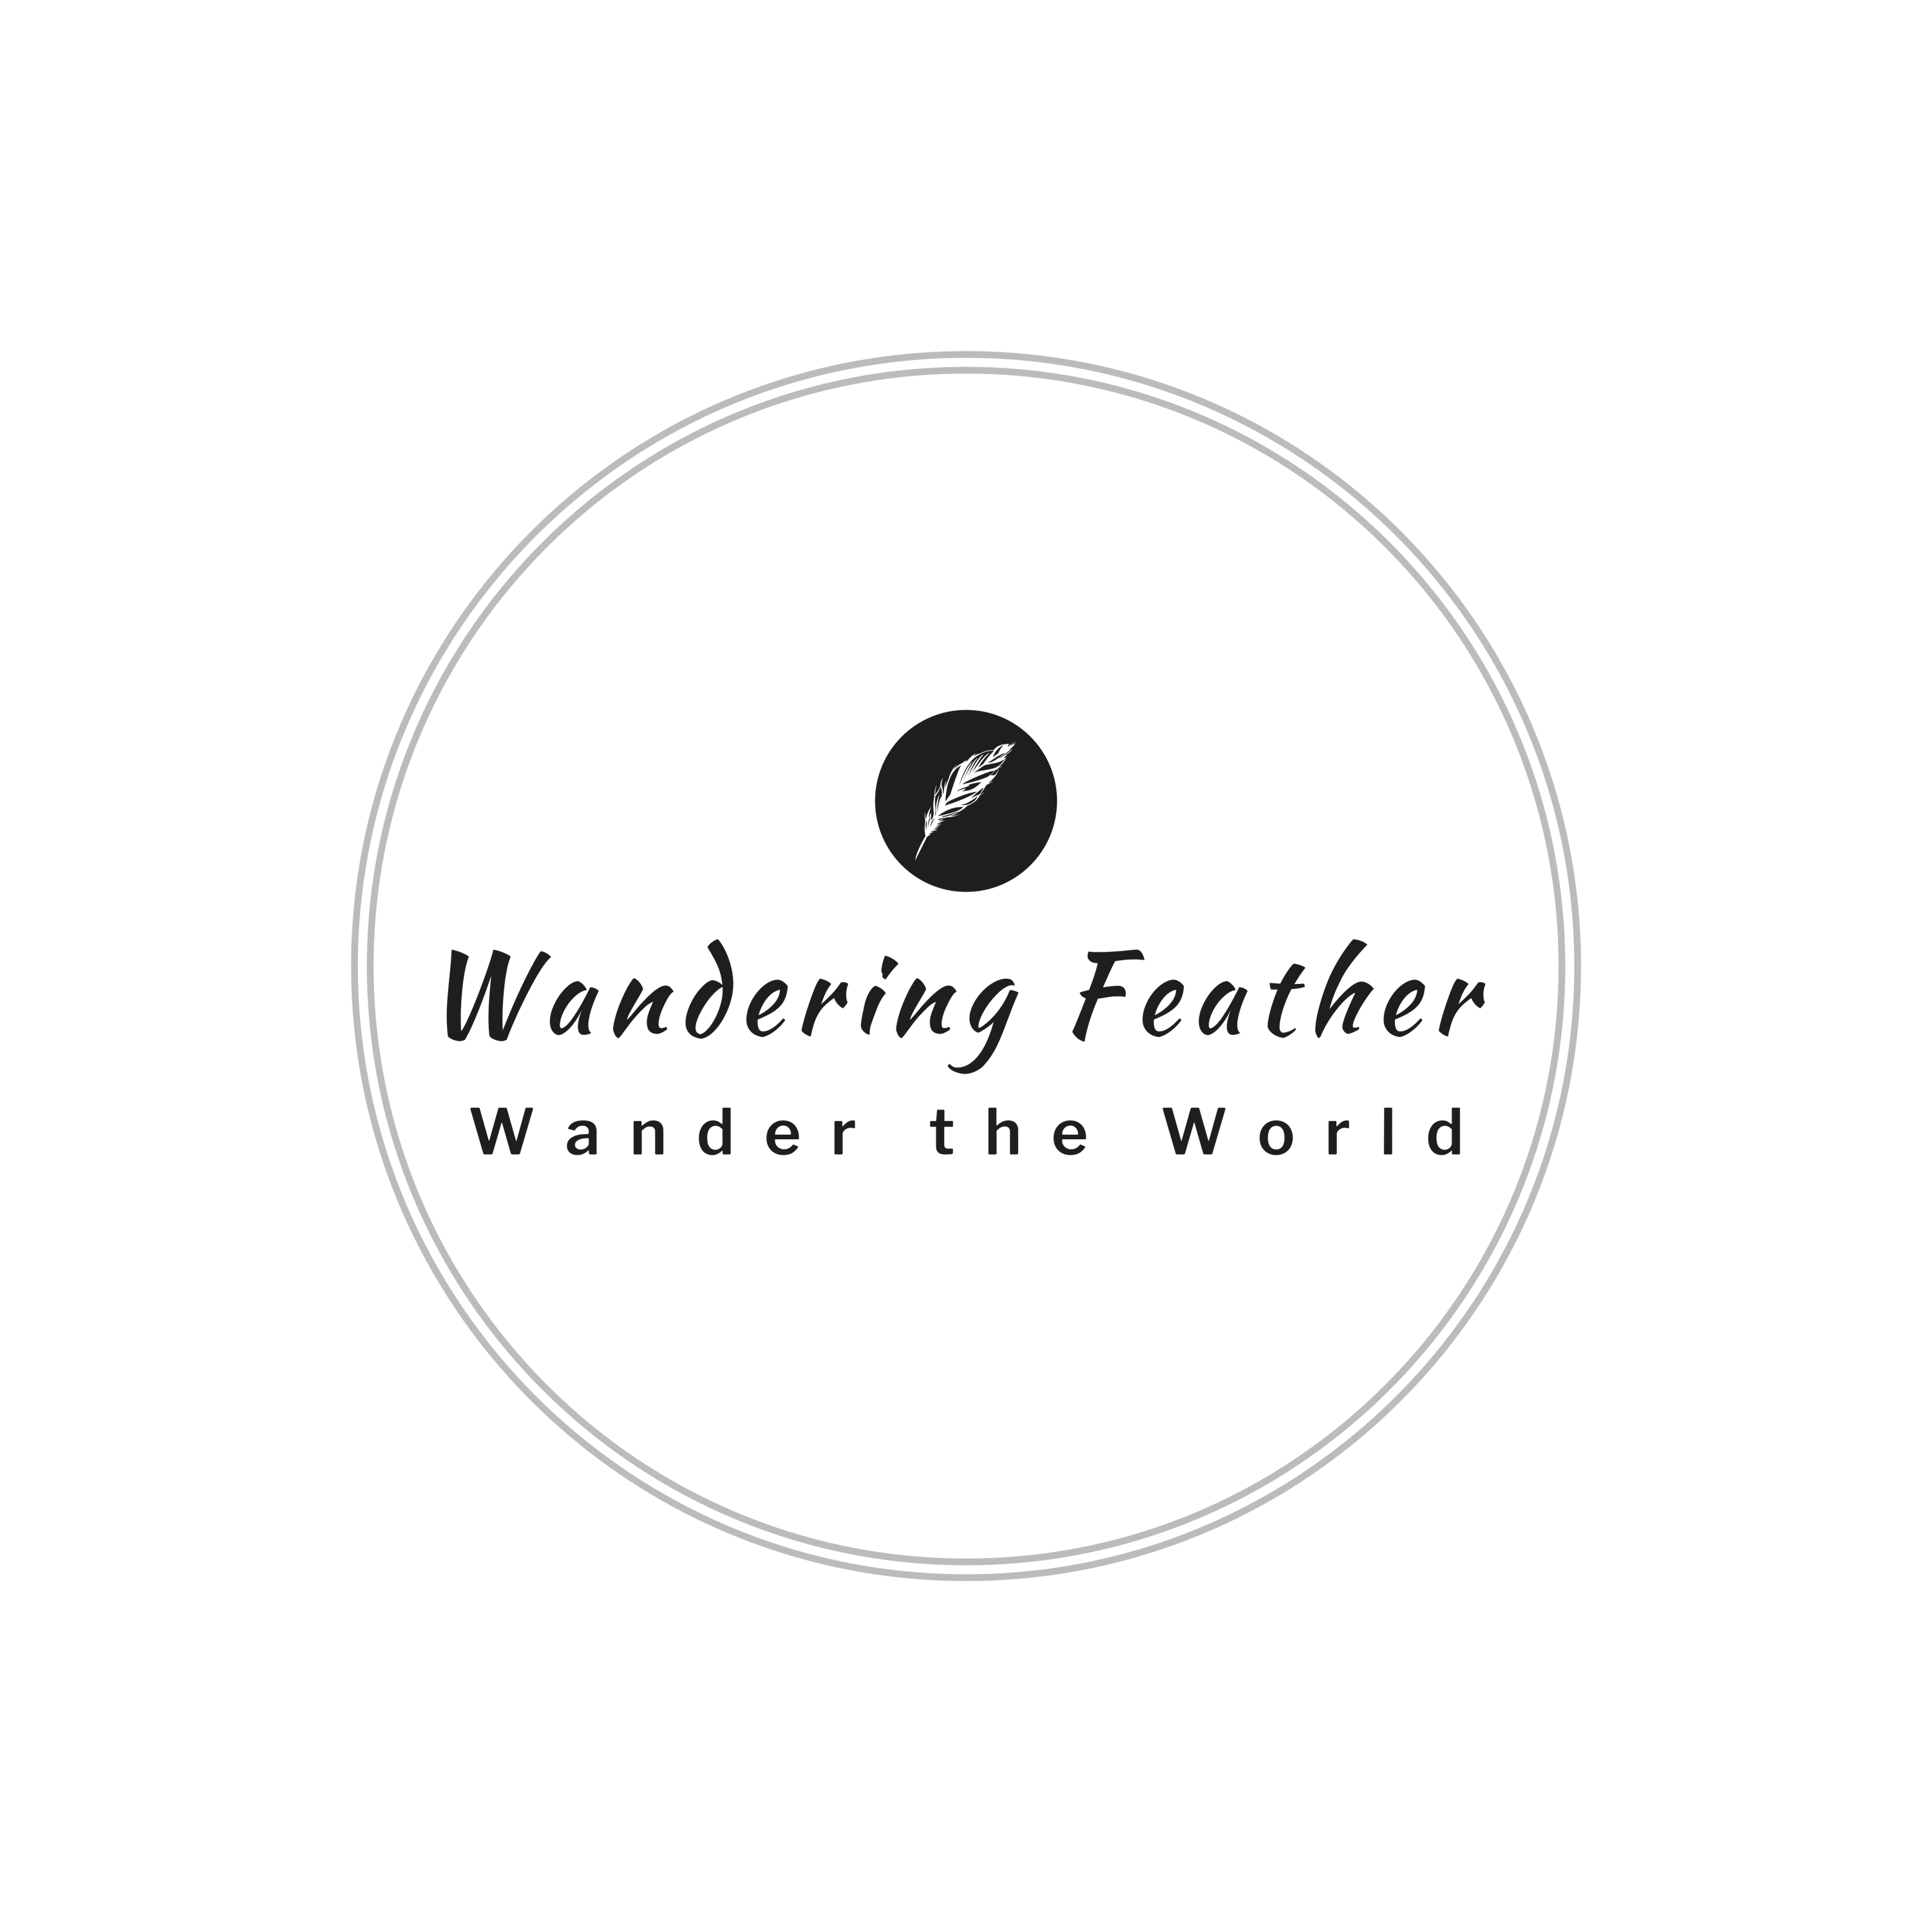 Wandering Feather